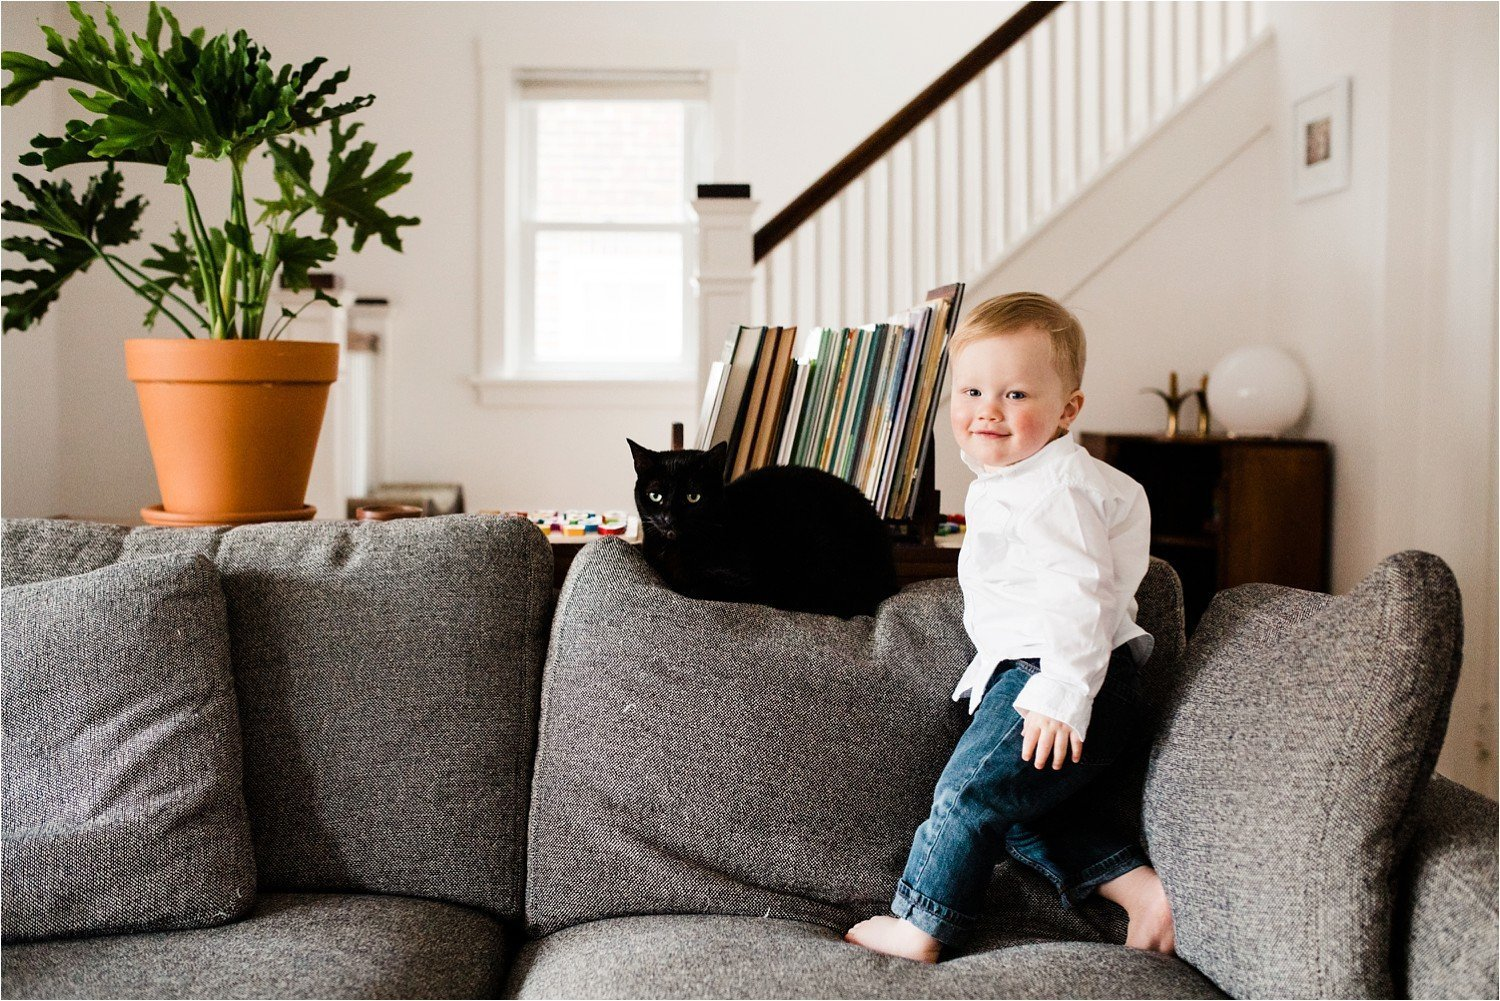 Family photos at home of toddler and cat in living room